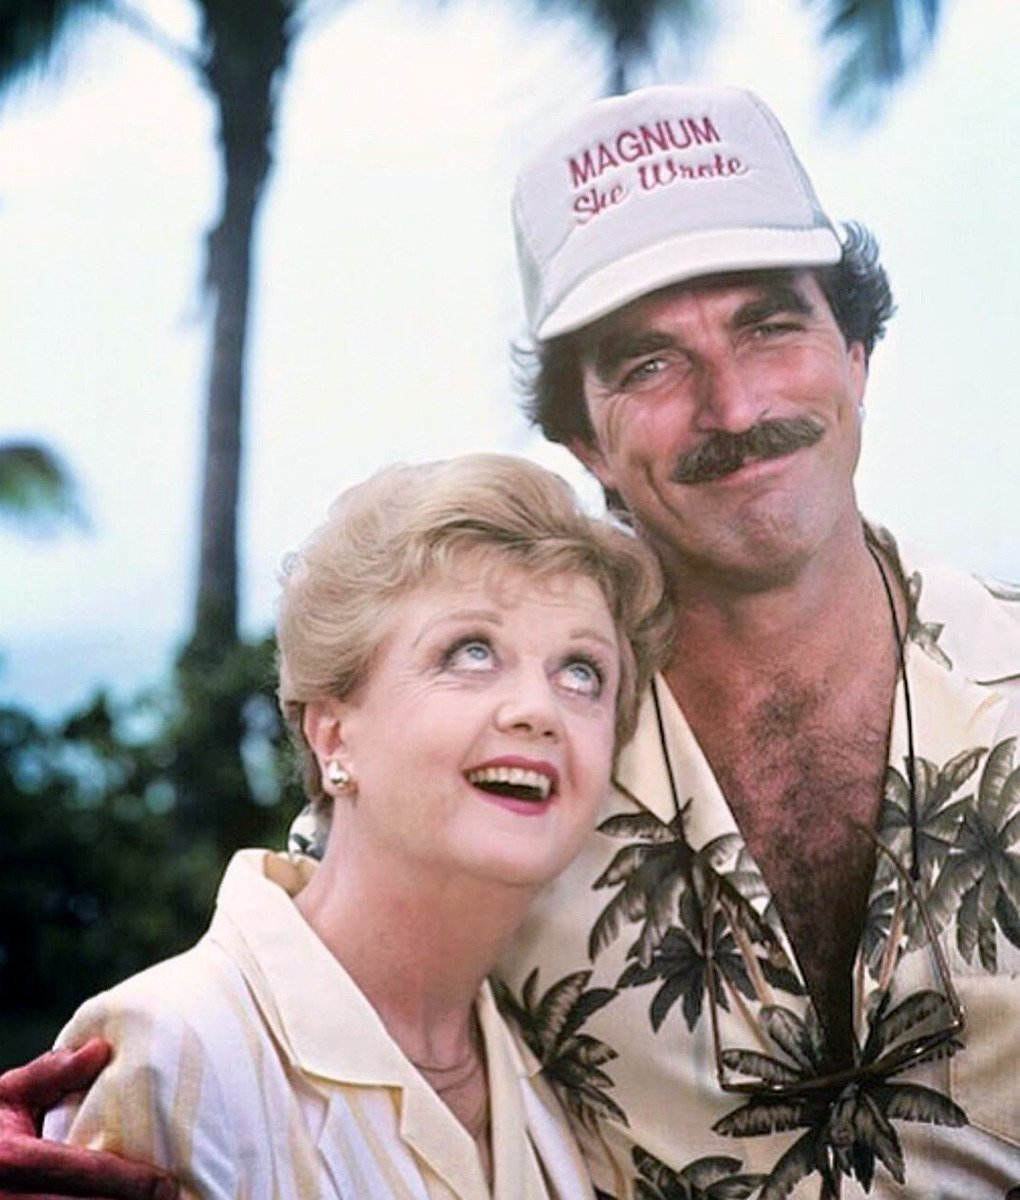 When Murder, She Wrote and Magnum, P.I. shared a story arc that lasted for two episodes